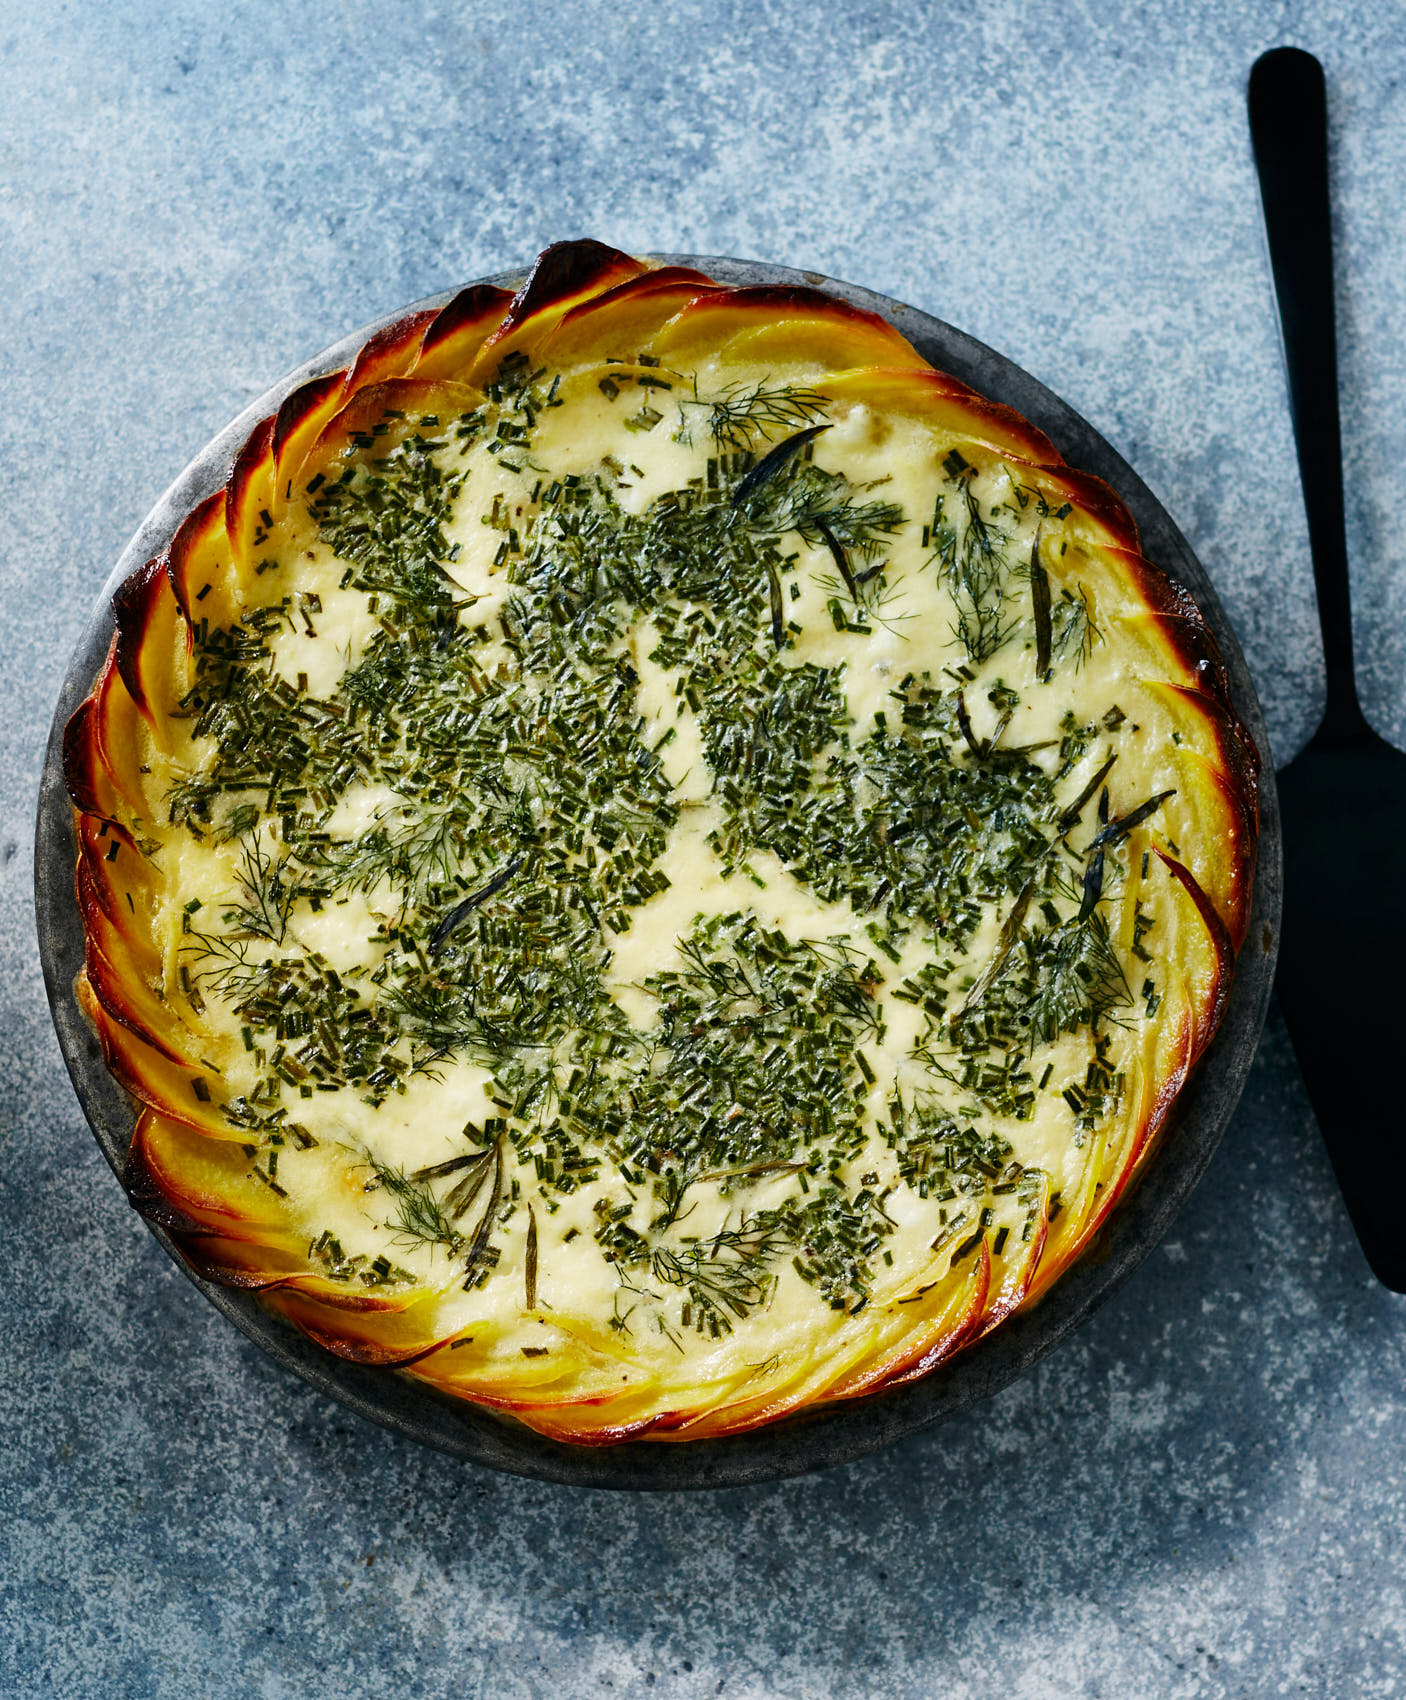 potato-crusted-herb-quiche-0408-w